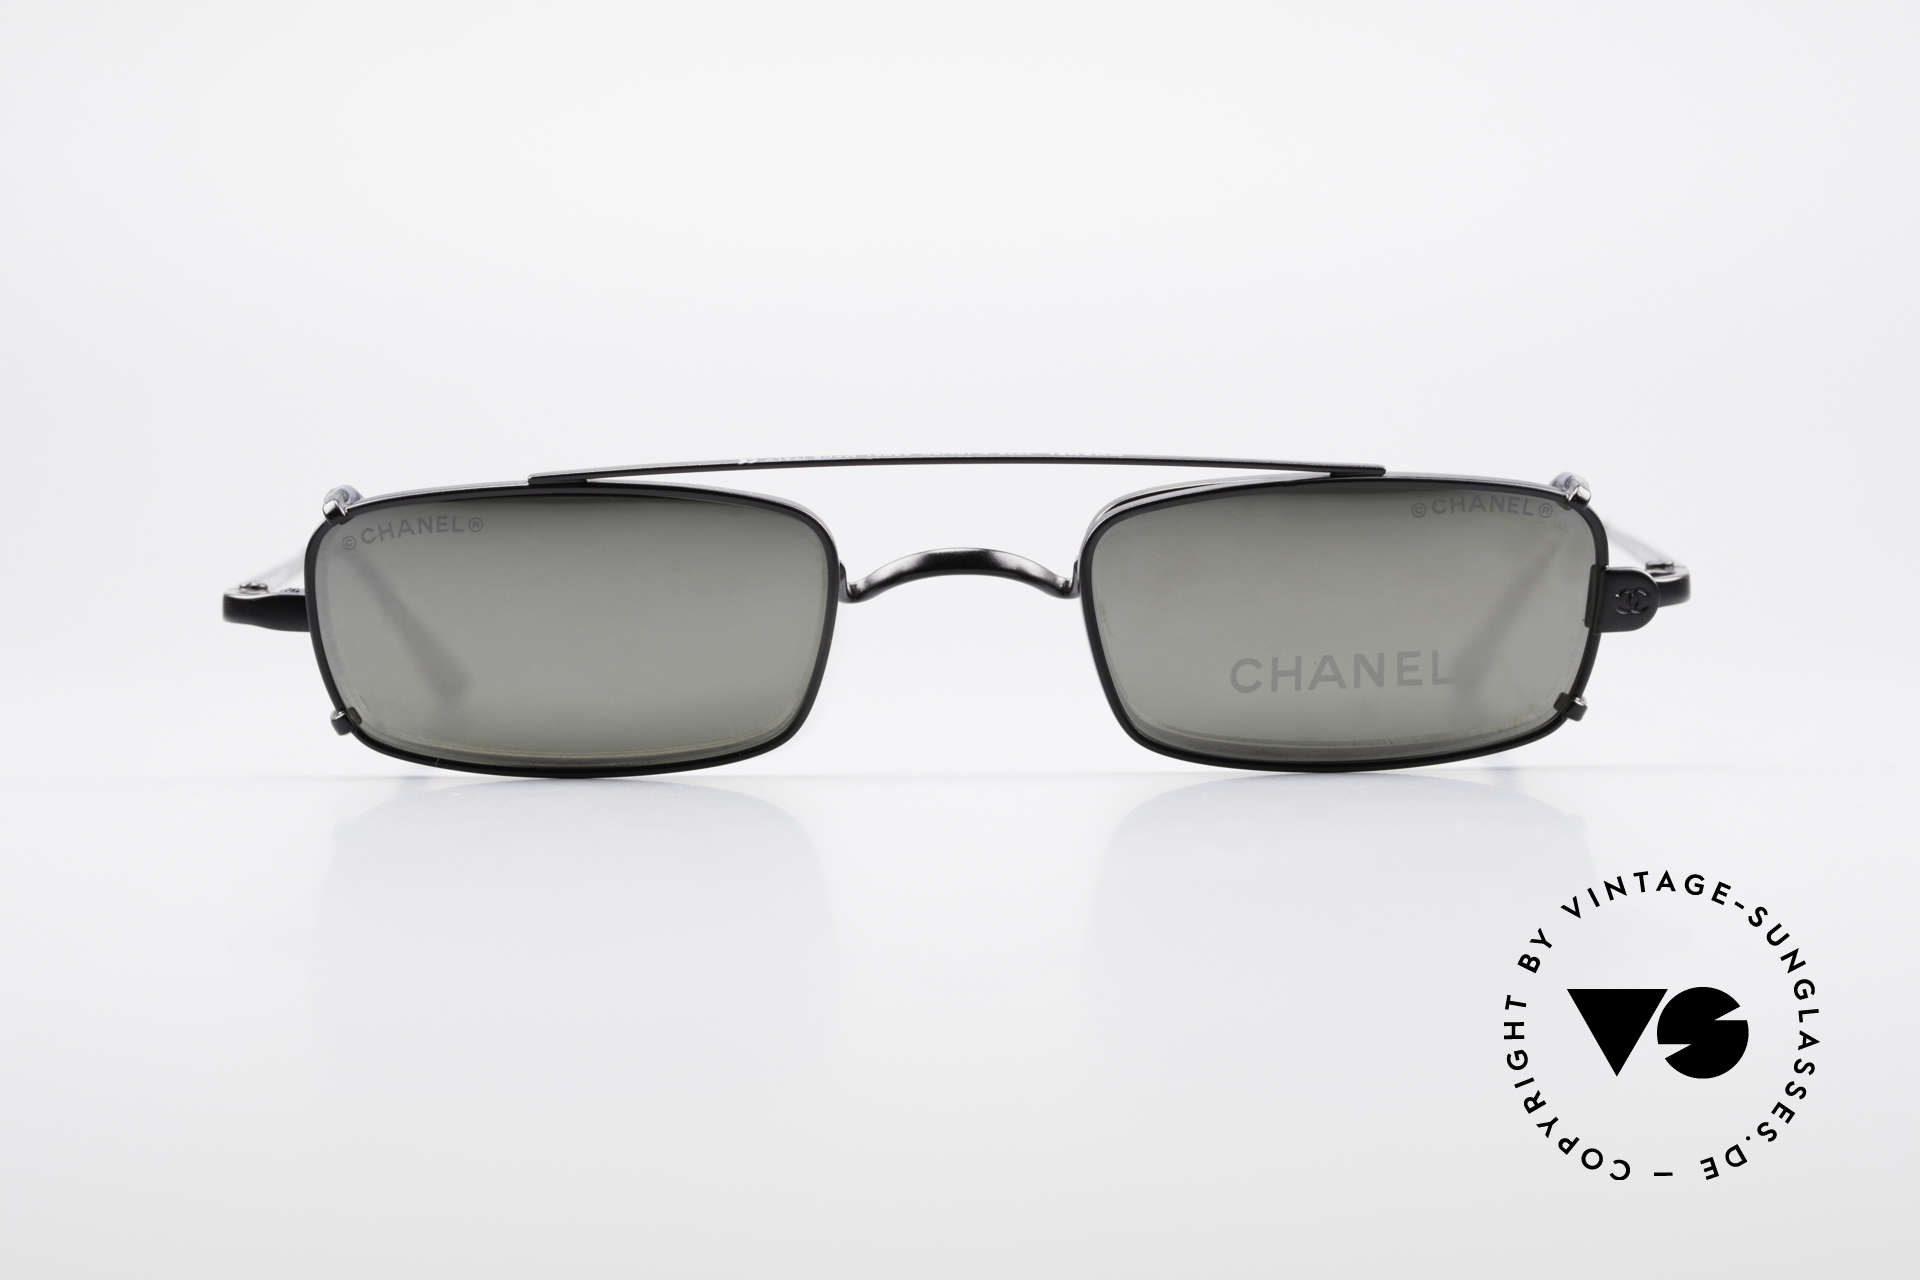 Chanel 2038 Luxury Glasses With Clip On, square vintage frame + practical clip-on; black finish, Made for Men and Women